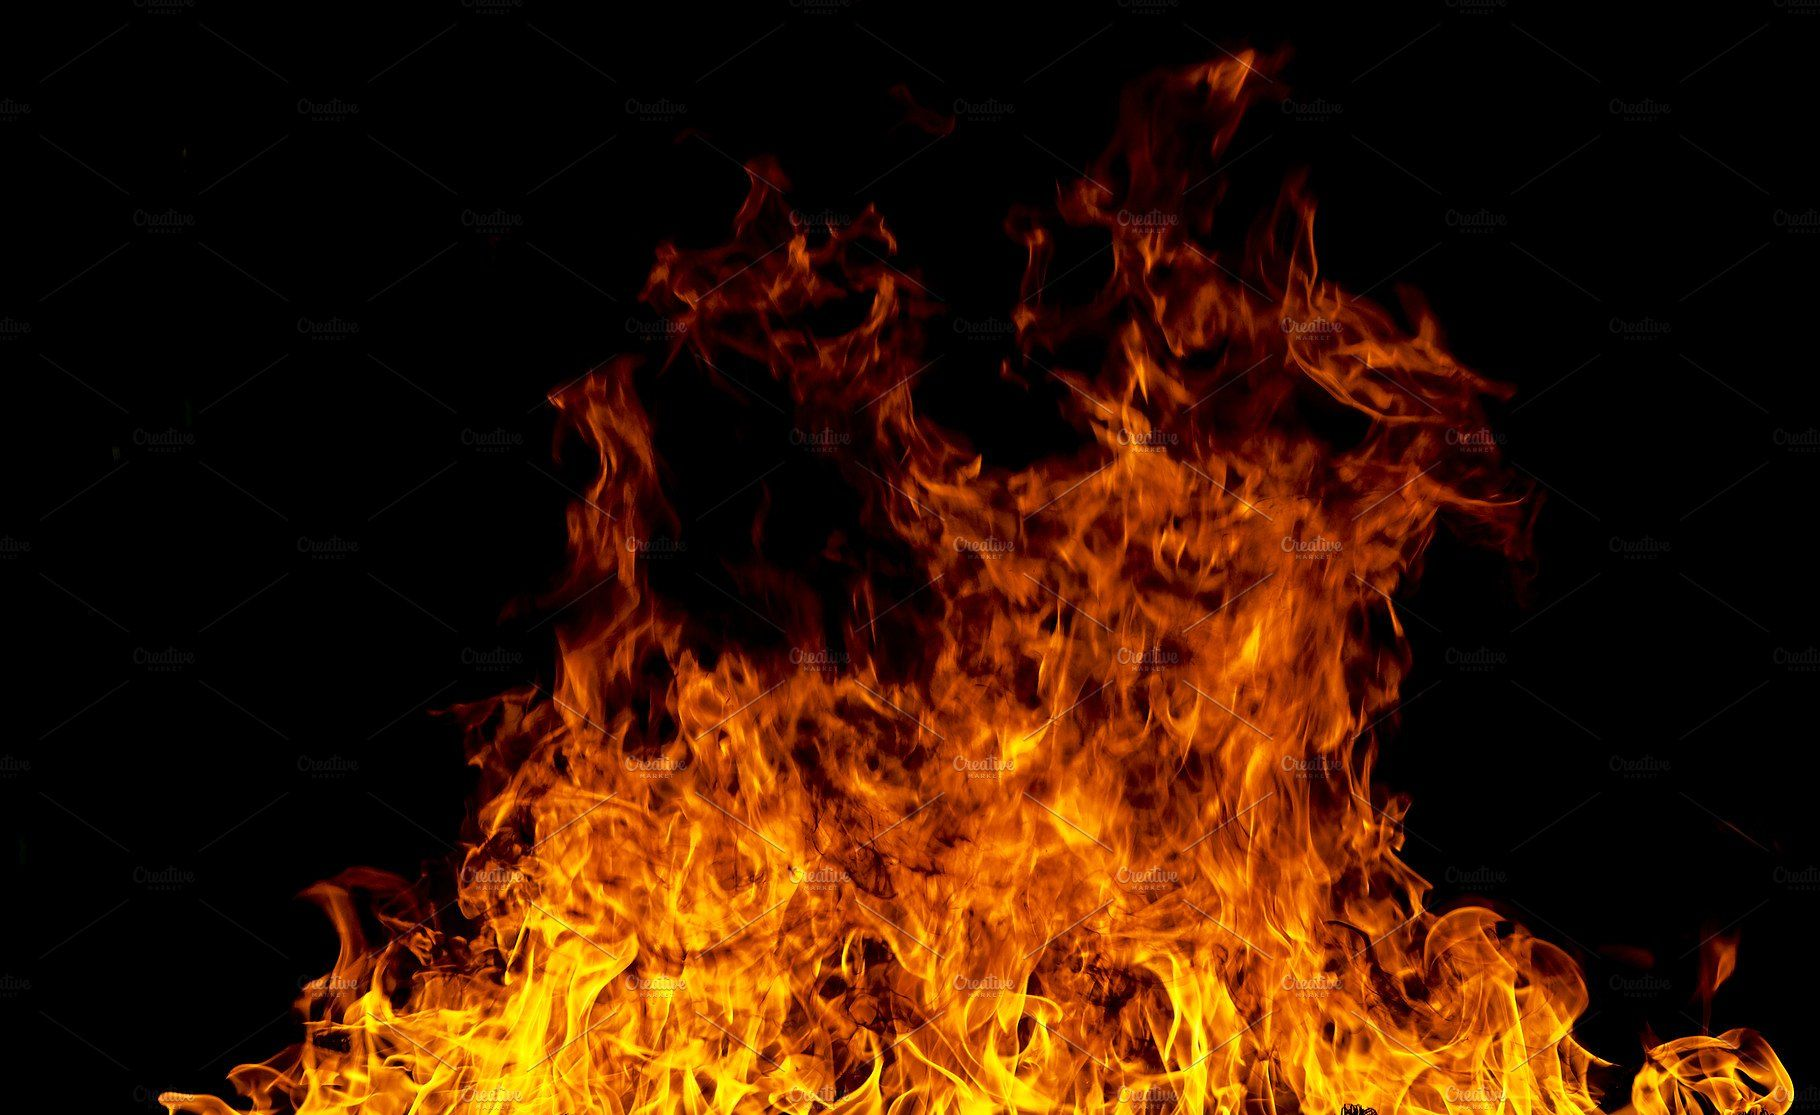 Fire Flames On A Black Background Black Backgrounds Gold Texture Background Dslr Background Images